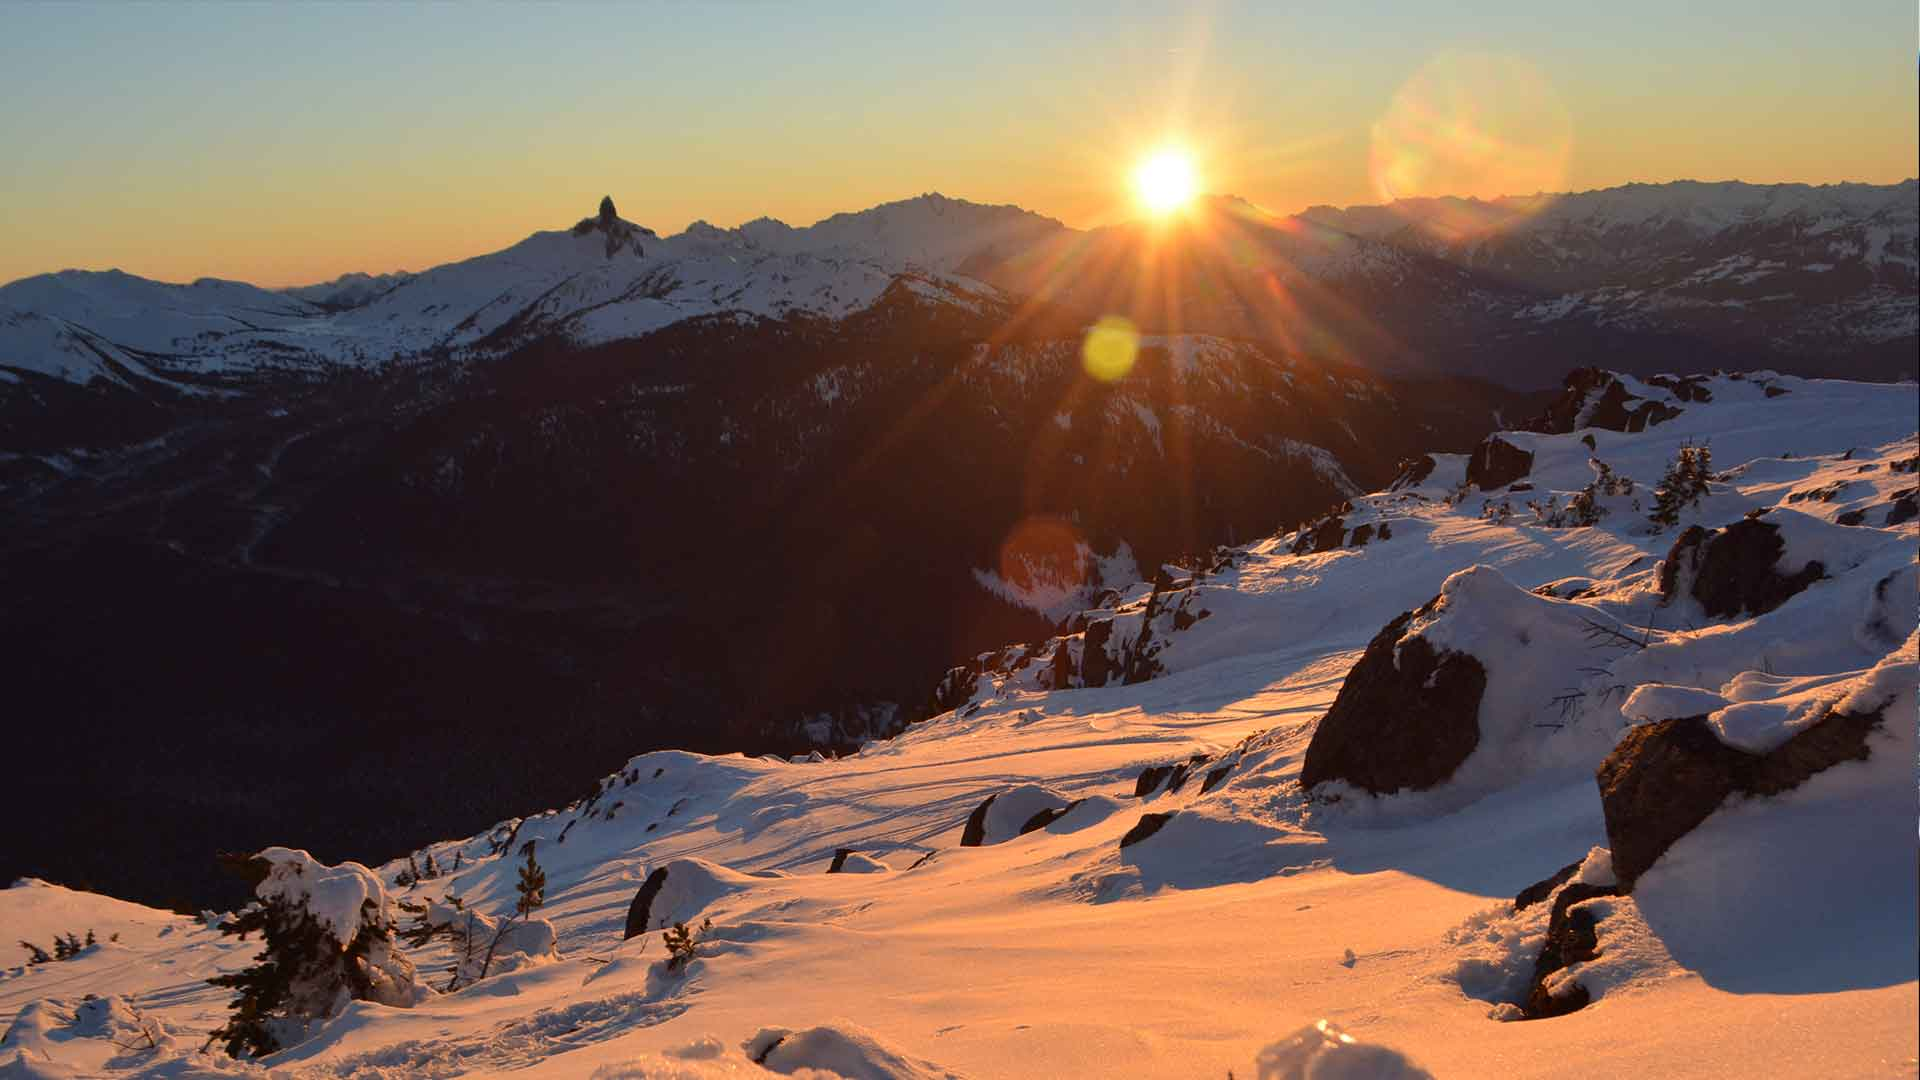 View from Whistler Mountain of the sunset dropping behind the Black Tusk